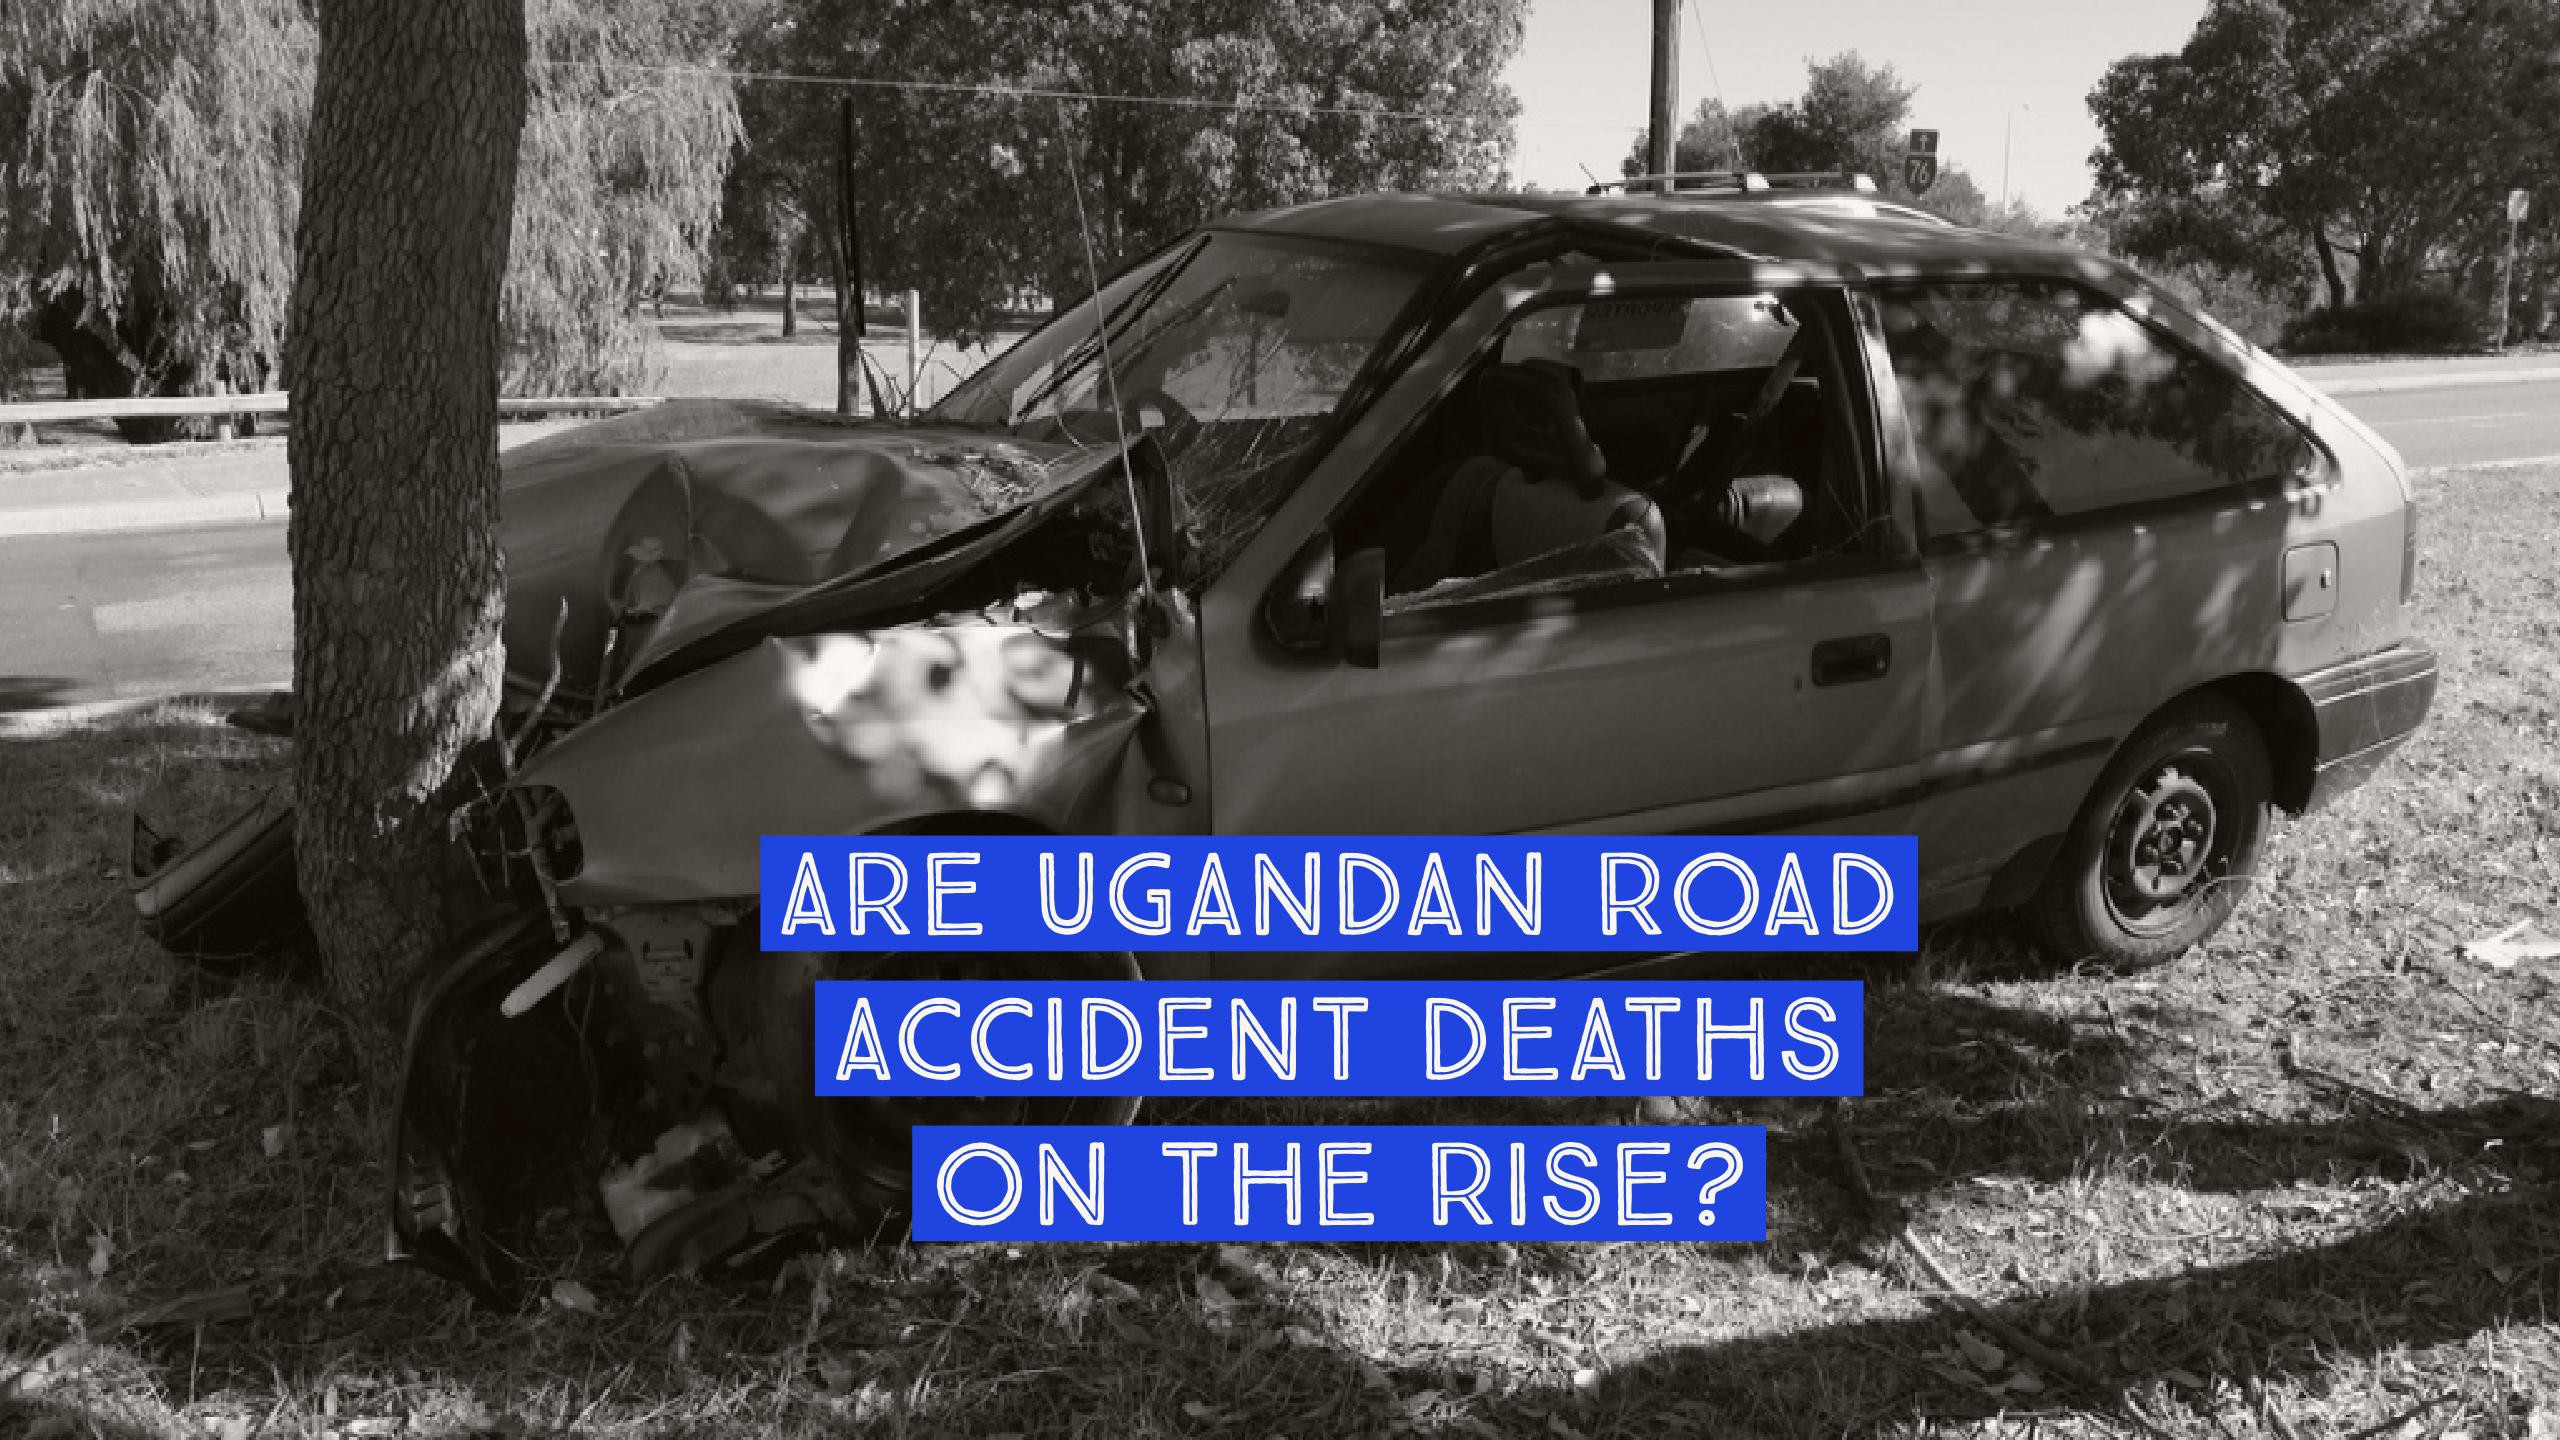 Are Ugandan Road Accident Deaths On The Rise? - PesaCheck